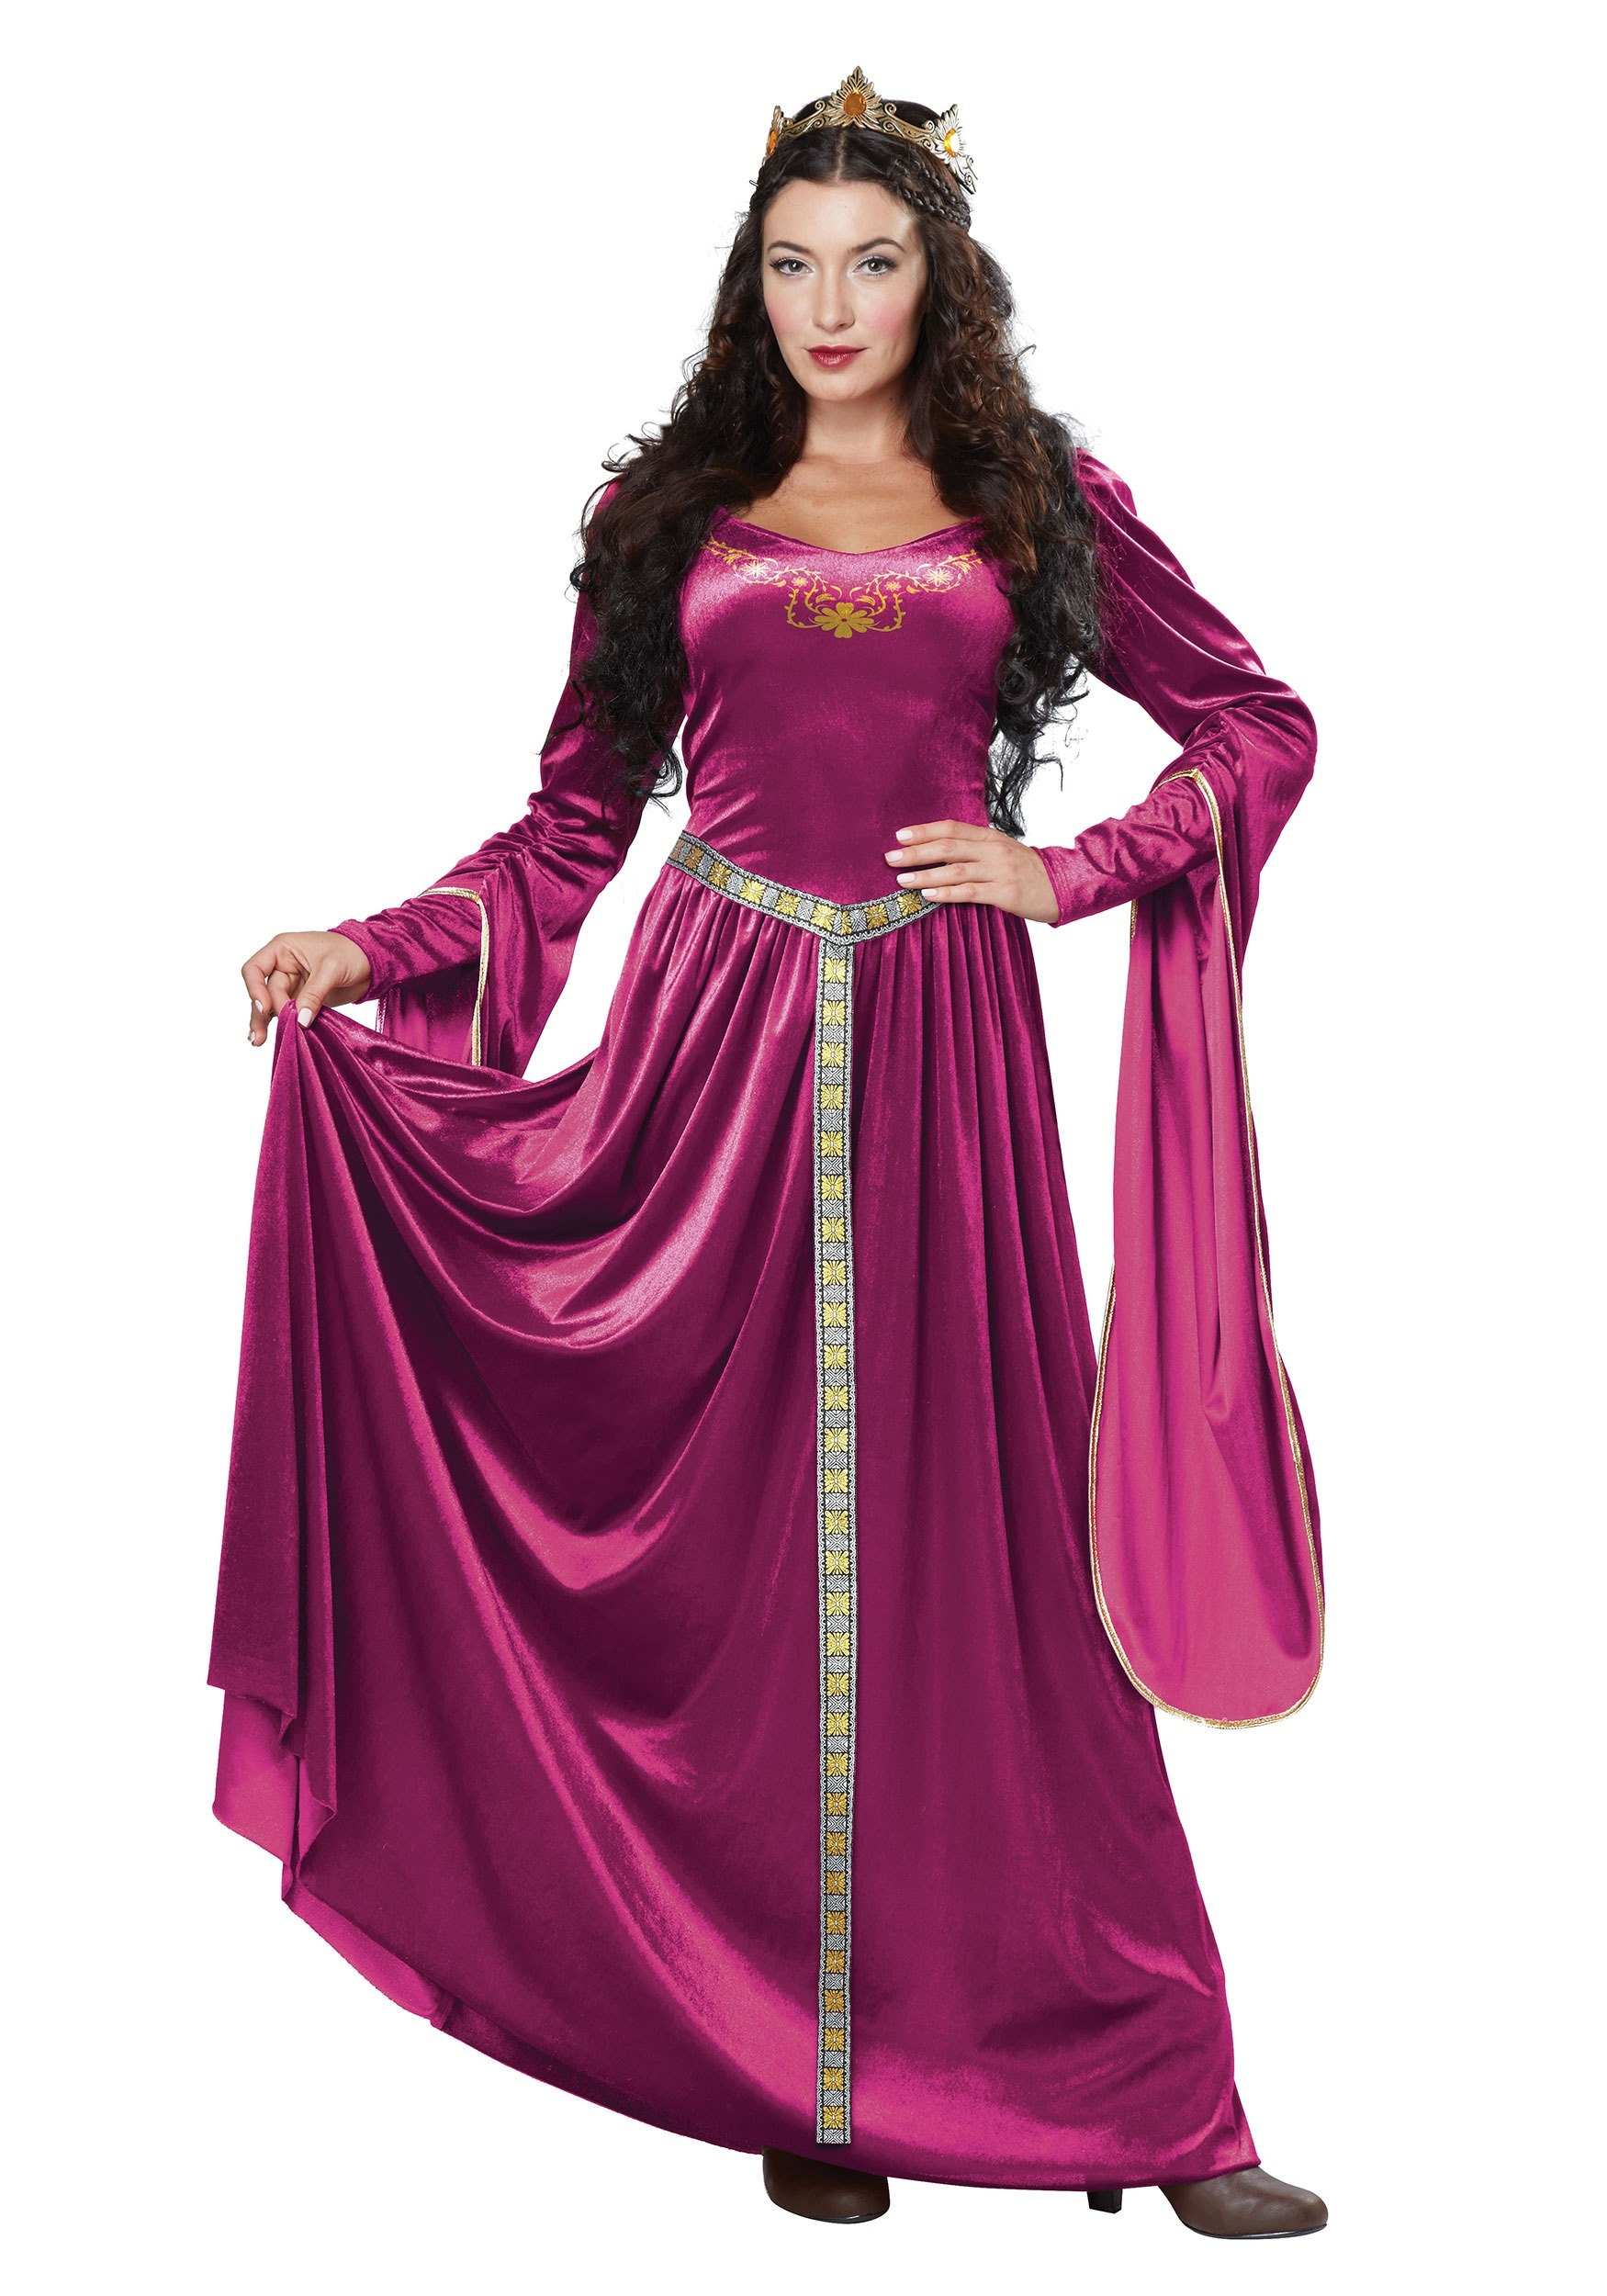 Lady Guinevere Women\'s Costume